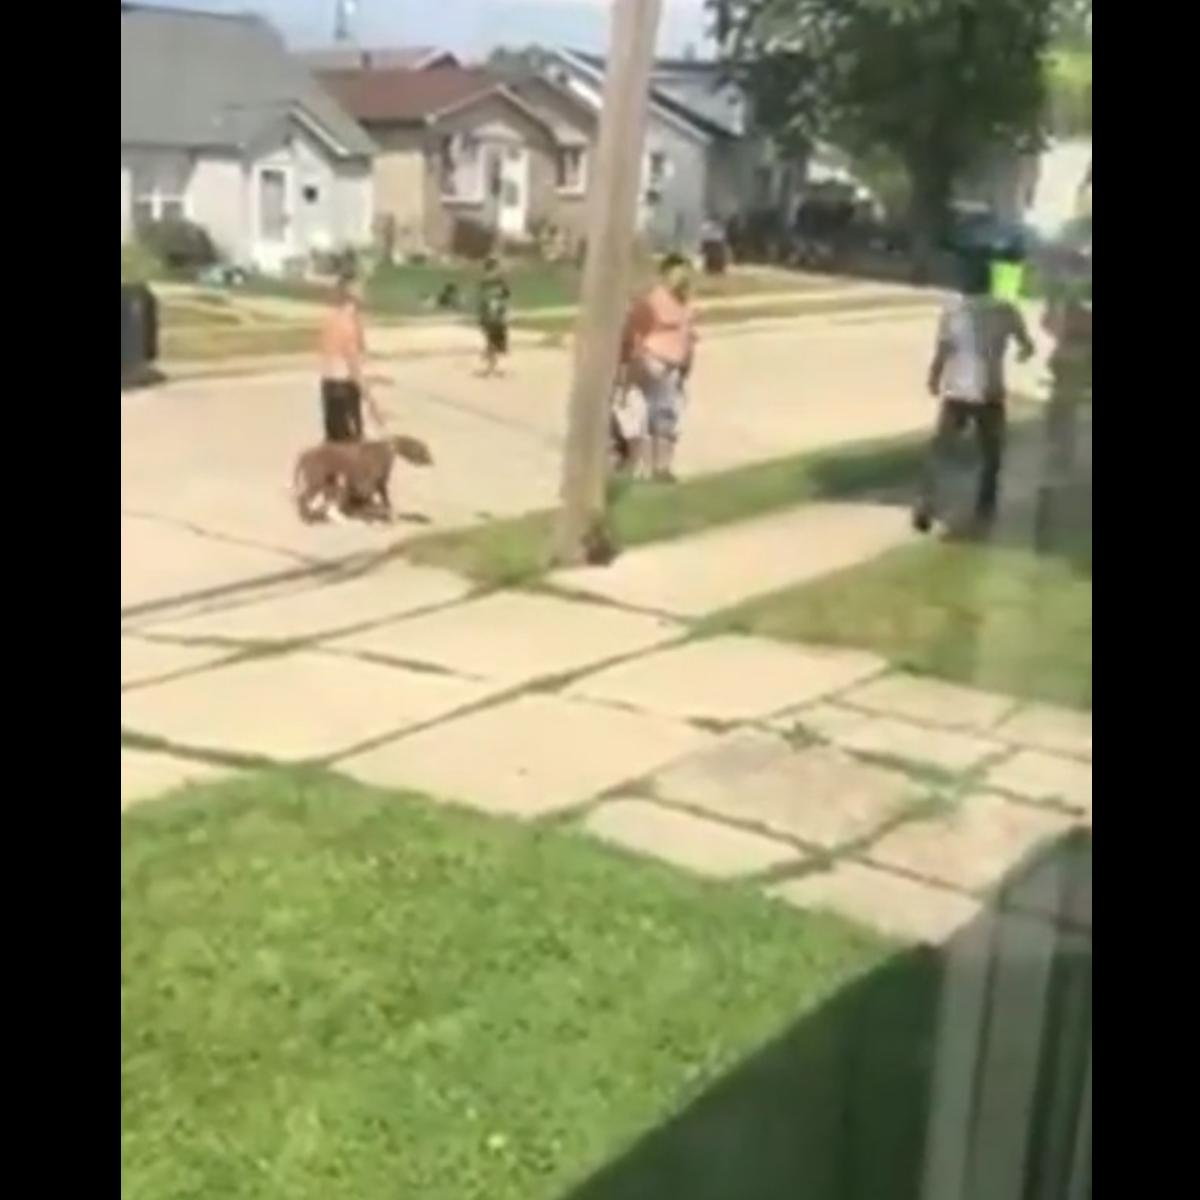 Black Man Defends Himself Against Group Of White Men And Their Dog